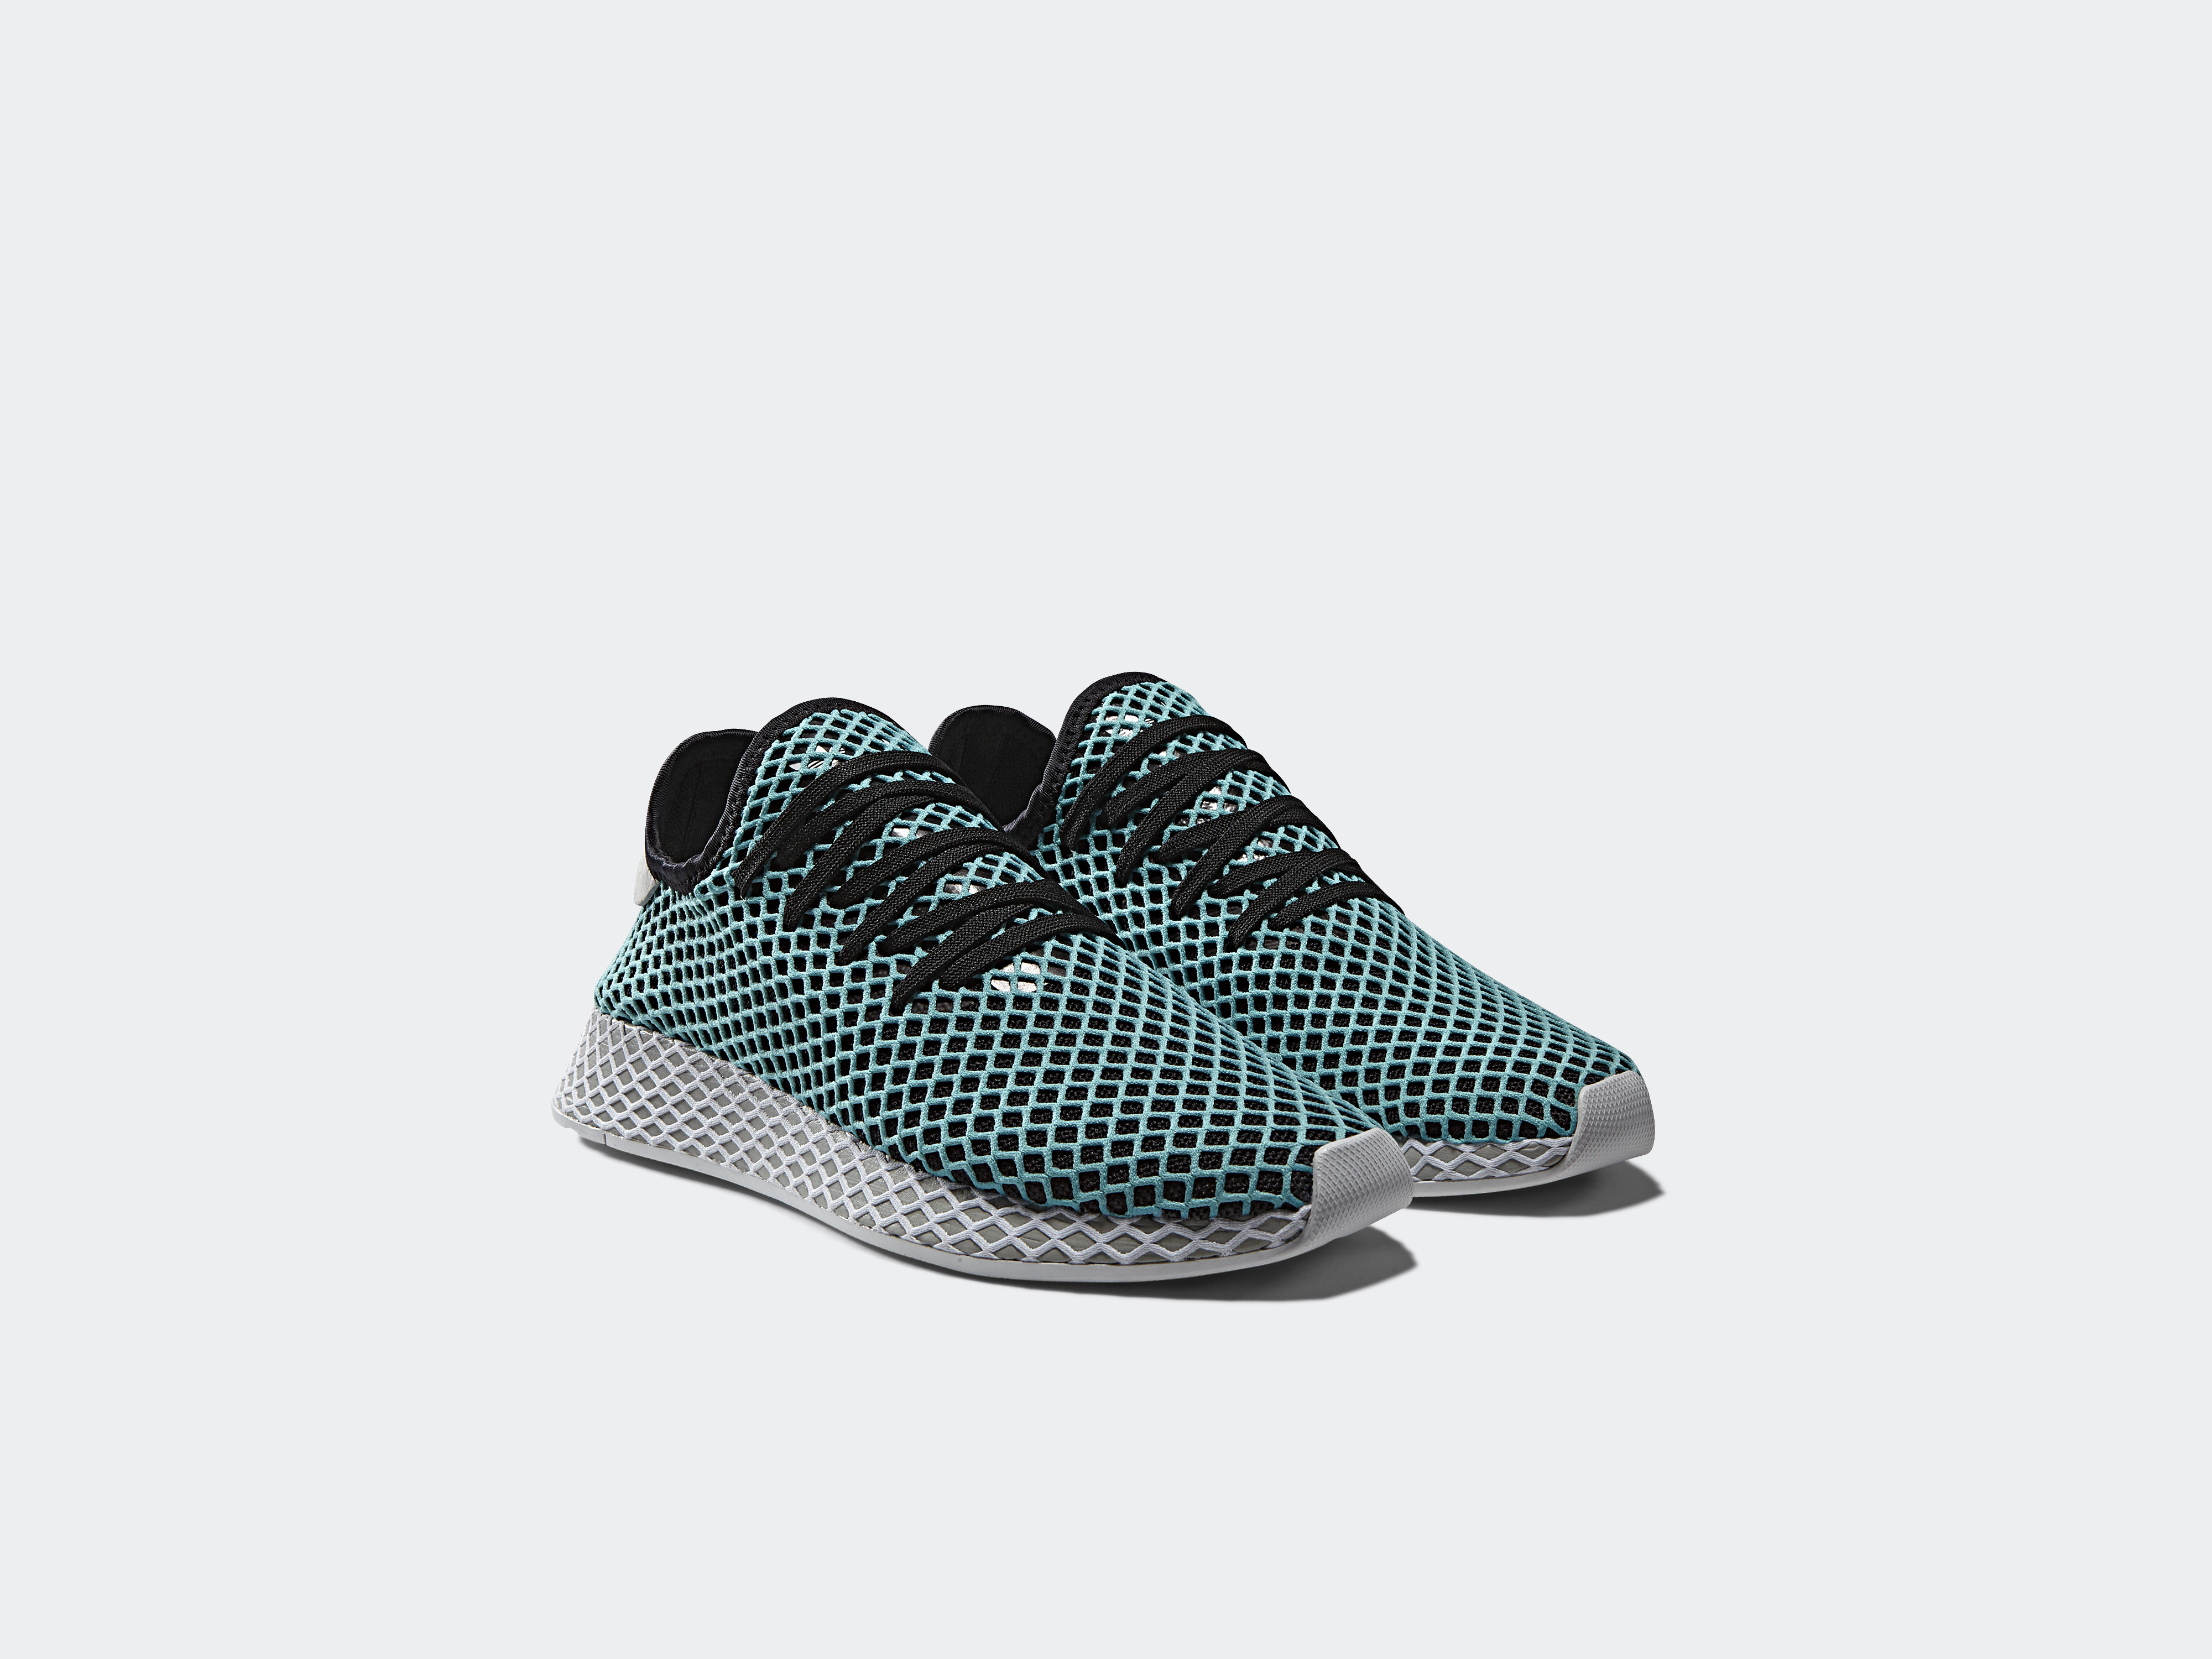 9a4750cf232c2 adidas Shows the Ocean Some Love with the adidas Deerupt Parley ...